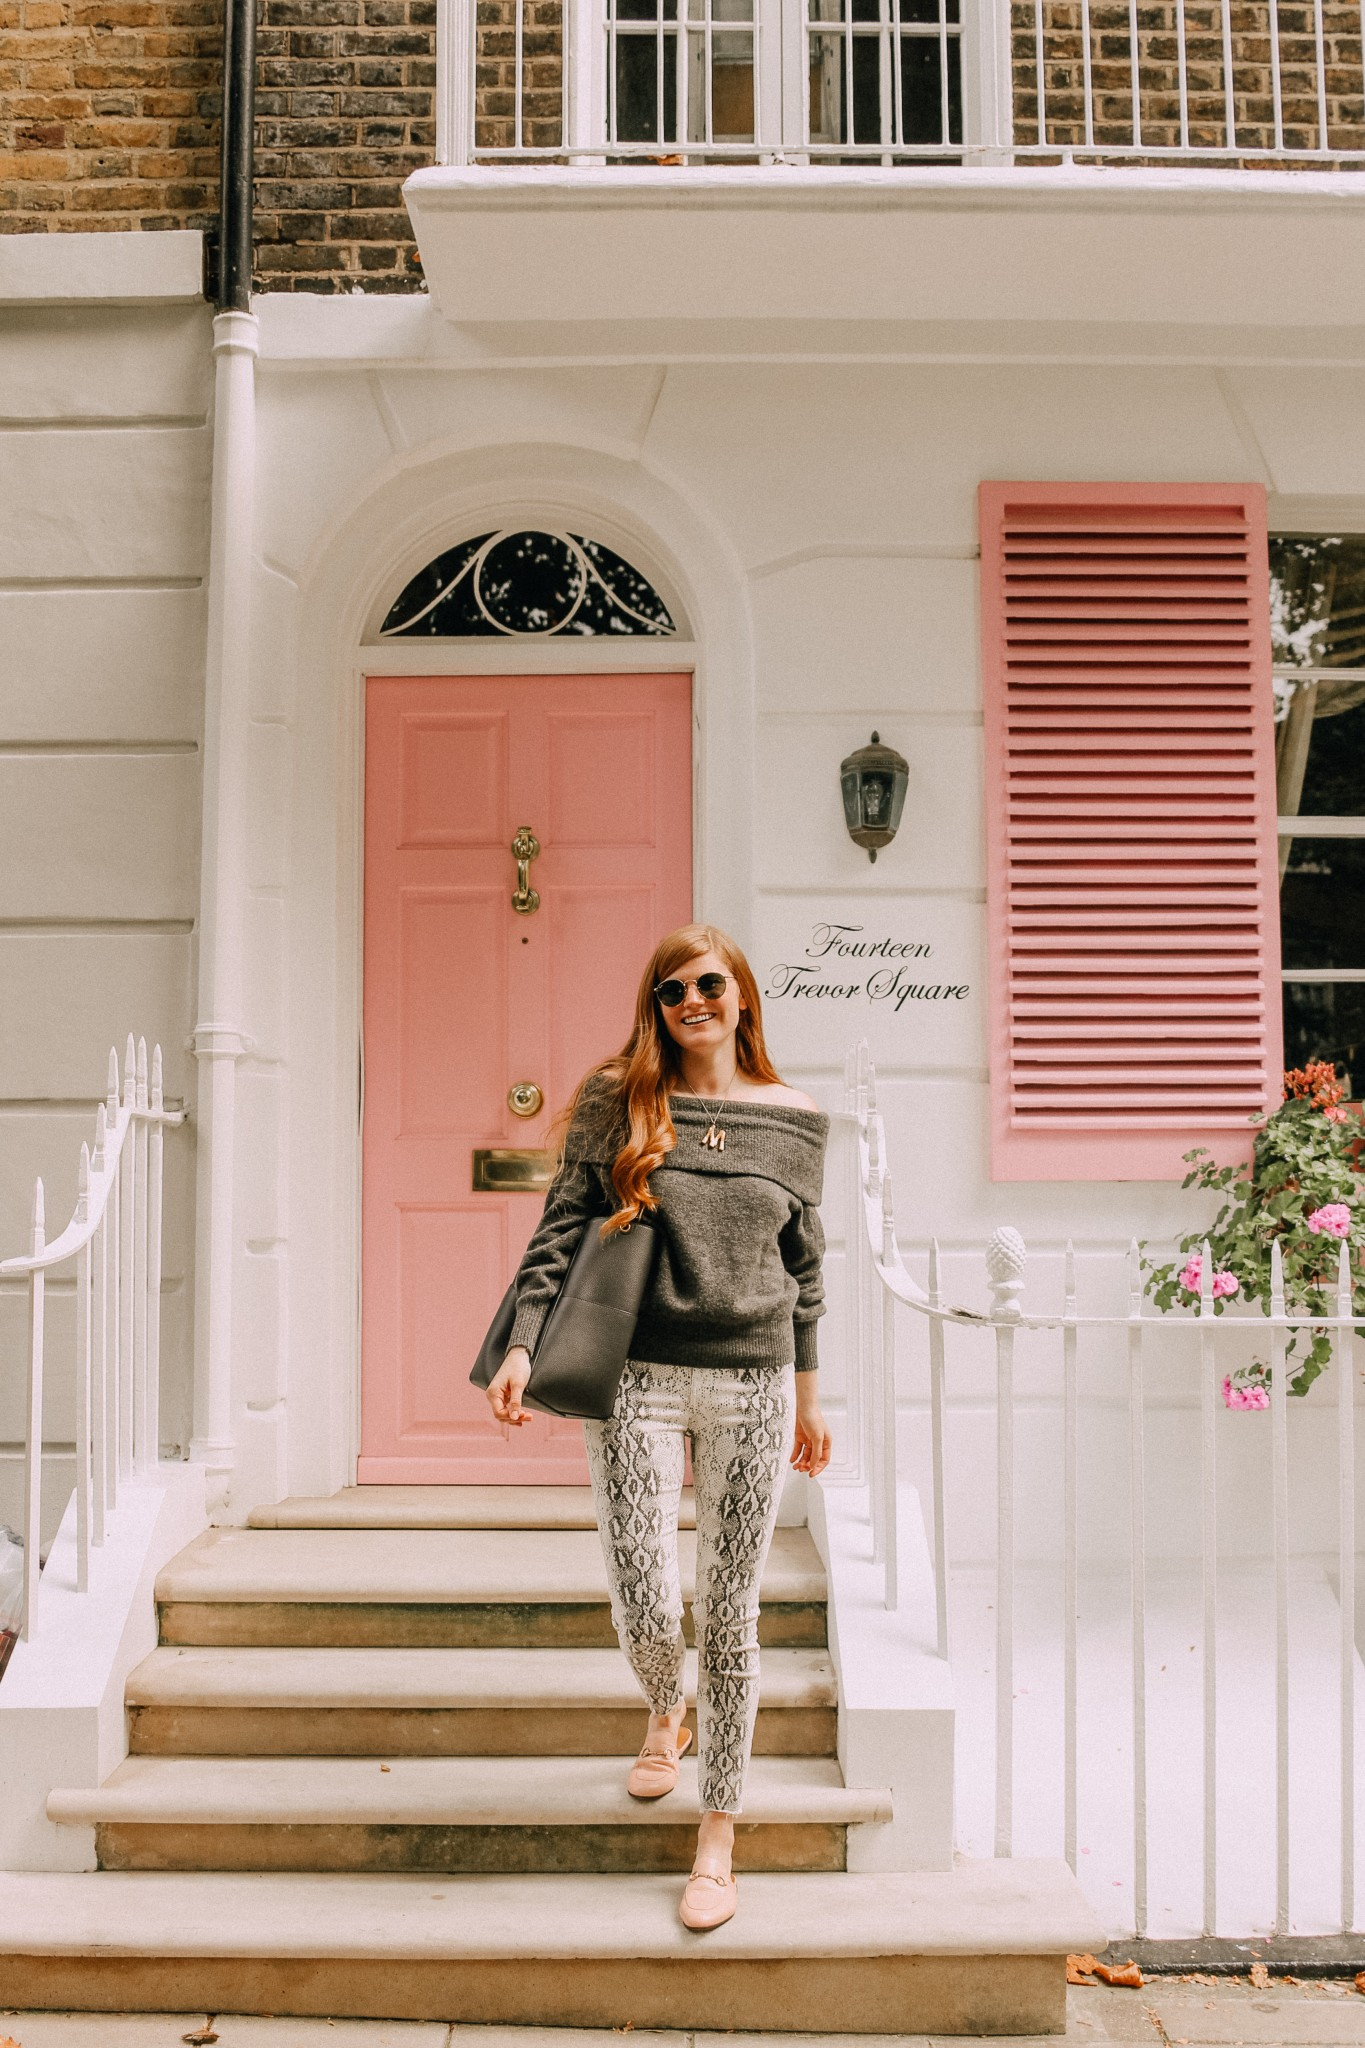 Lifestyle blogger Mollie Moore shares how to wear one of falls top trends: snakeskin| One of the best Fall trends featured by popular London fashion blogger, Mollie Moore: snakeskin pants